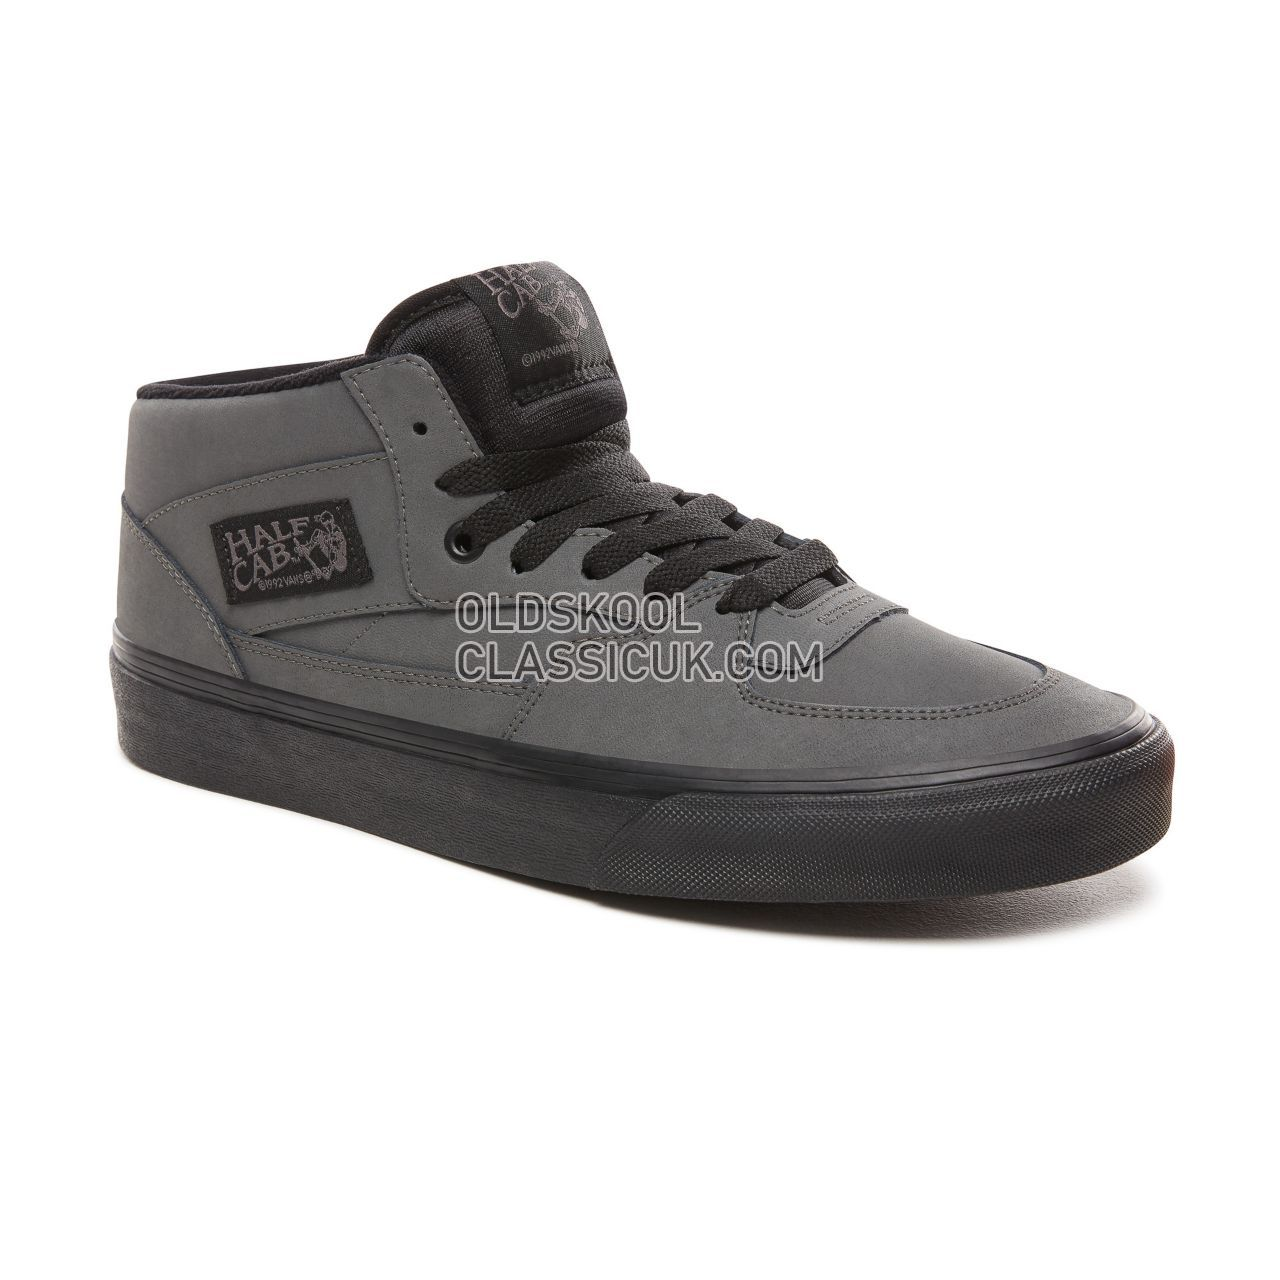 Vans Vansbuck Half Cab Sneakers Mens (Vansbuck) Pewter/Black VN0A348EUMJ Shoes